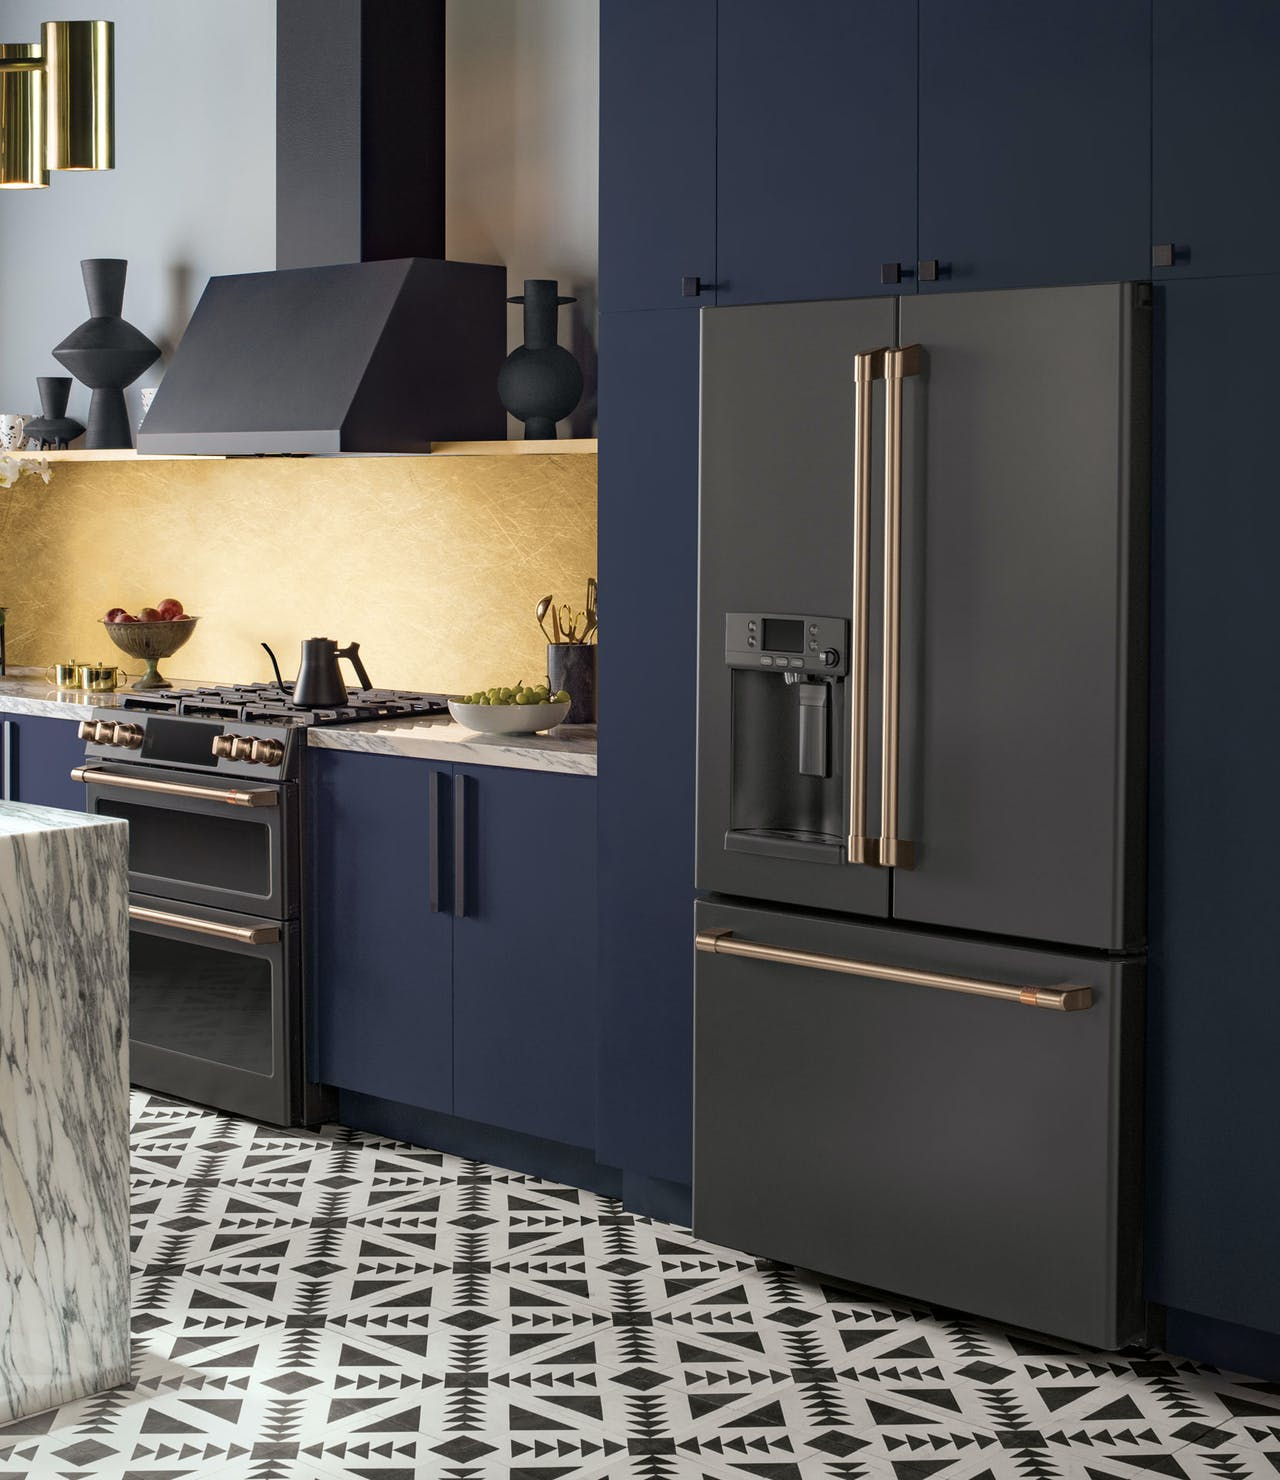 matte black range, hood, and french-door refrigerator in kitchen with navy cabinets